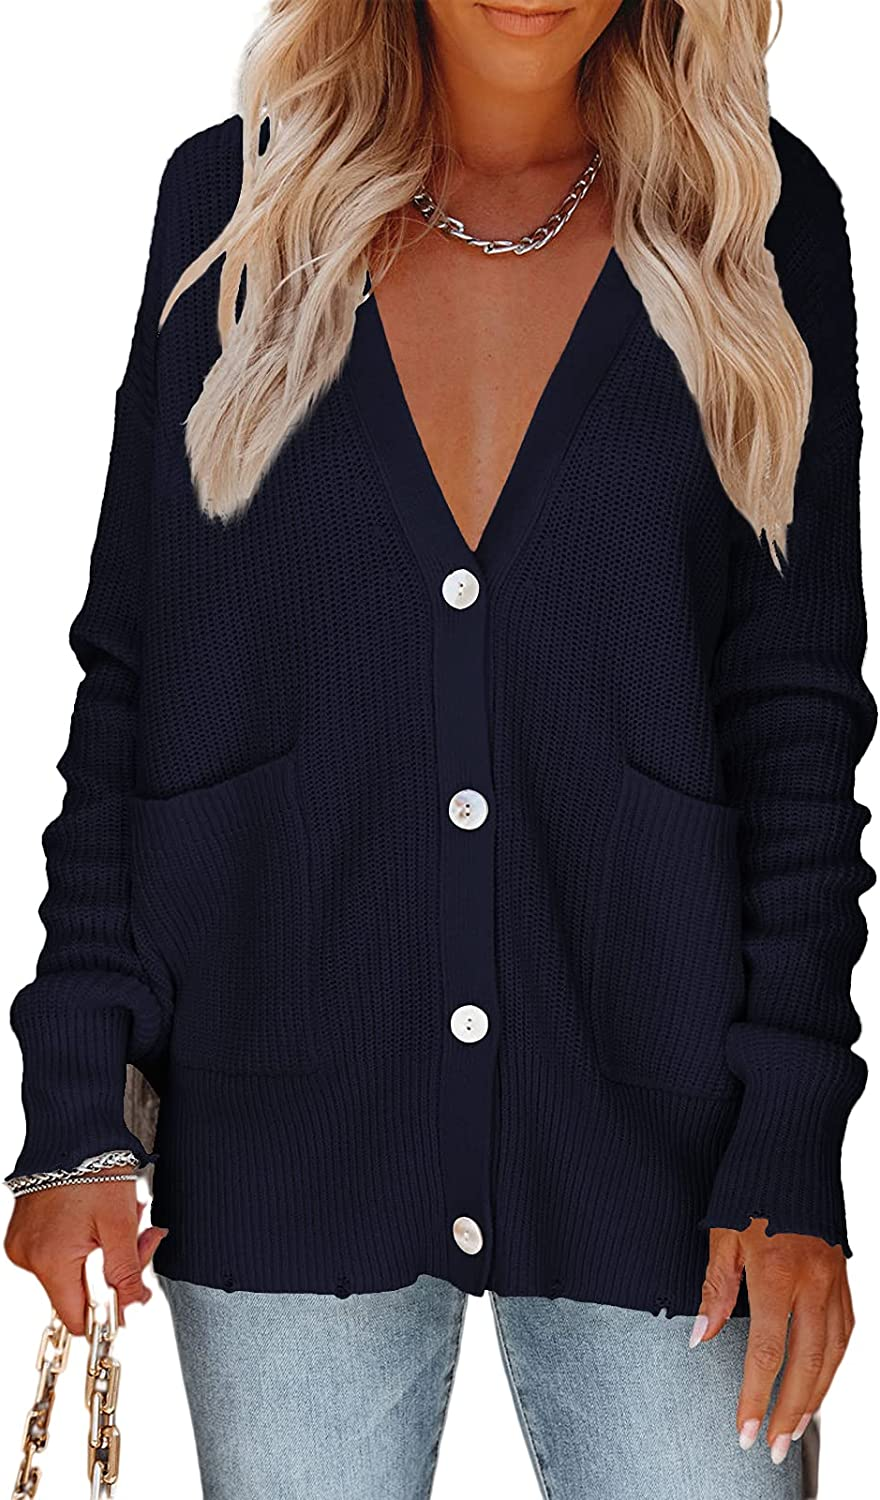 Dellytop Womens V Neck Button Down Cardigan Sweater Casual Long Sleeve Open Front Sweater Top with Pockets